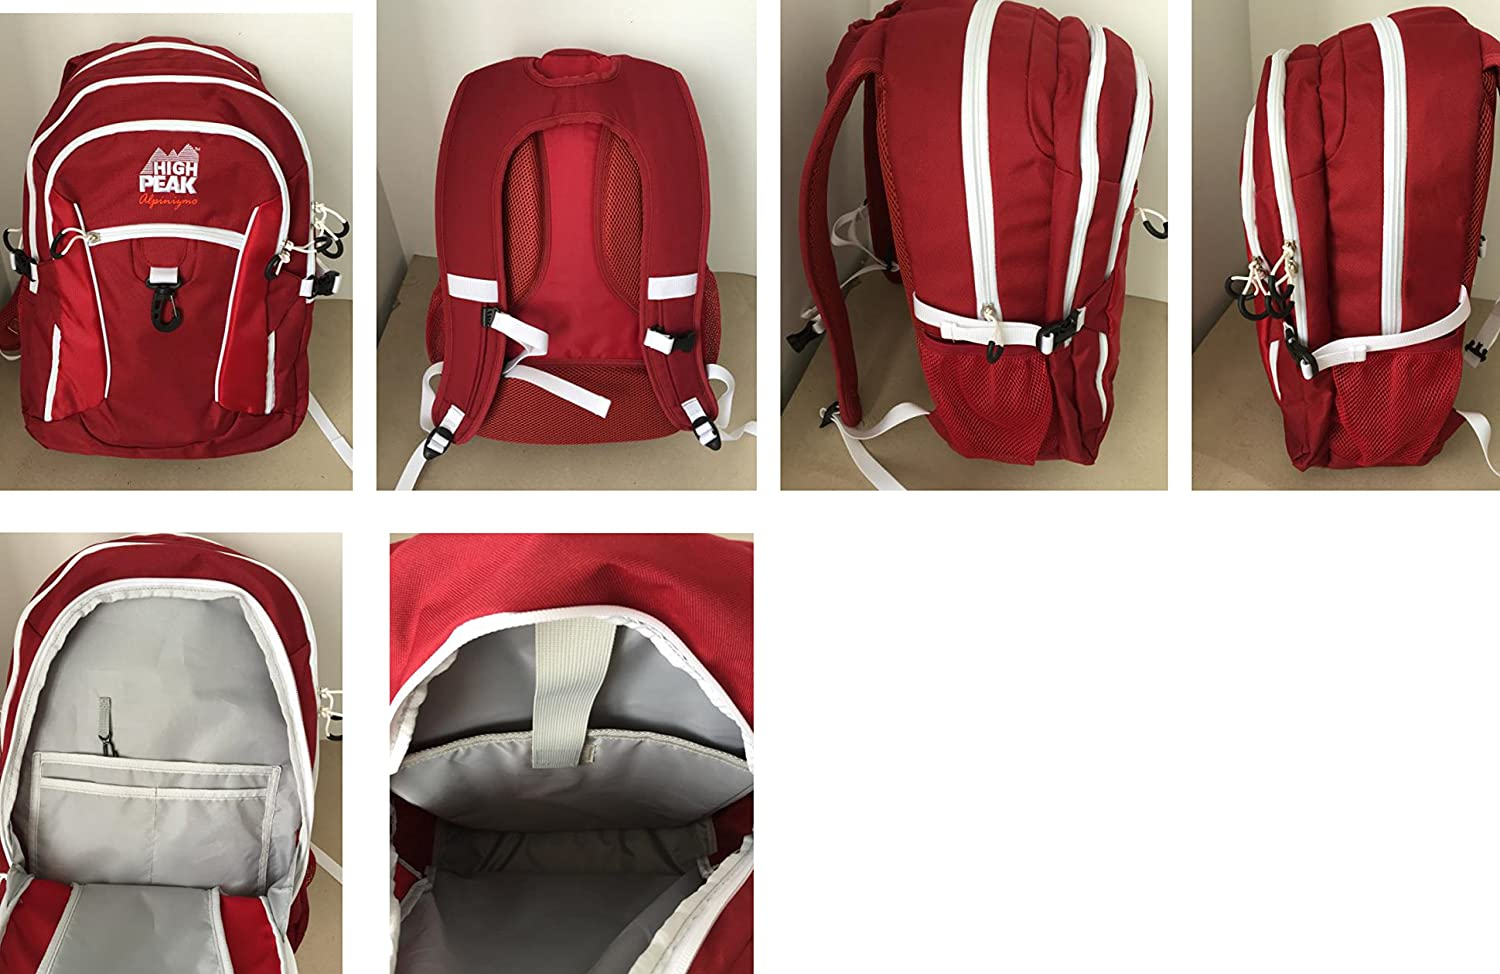 Blue//Red//Grey Alpinizmo High Peak USA Vector 38 Backpack Combo Set One Size HP 467